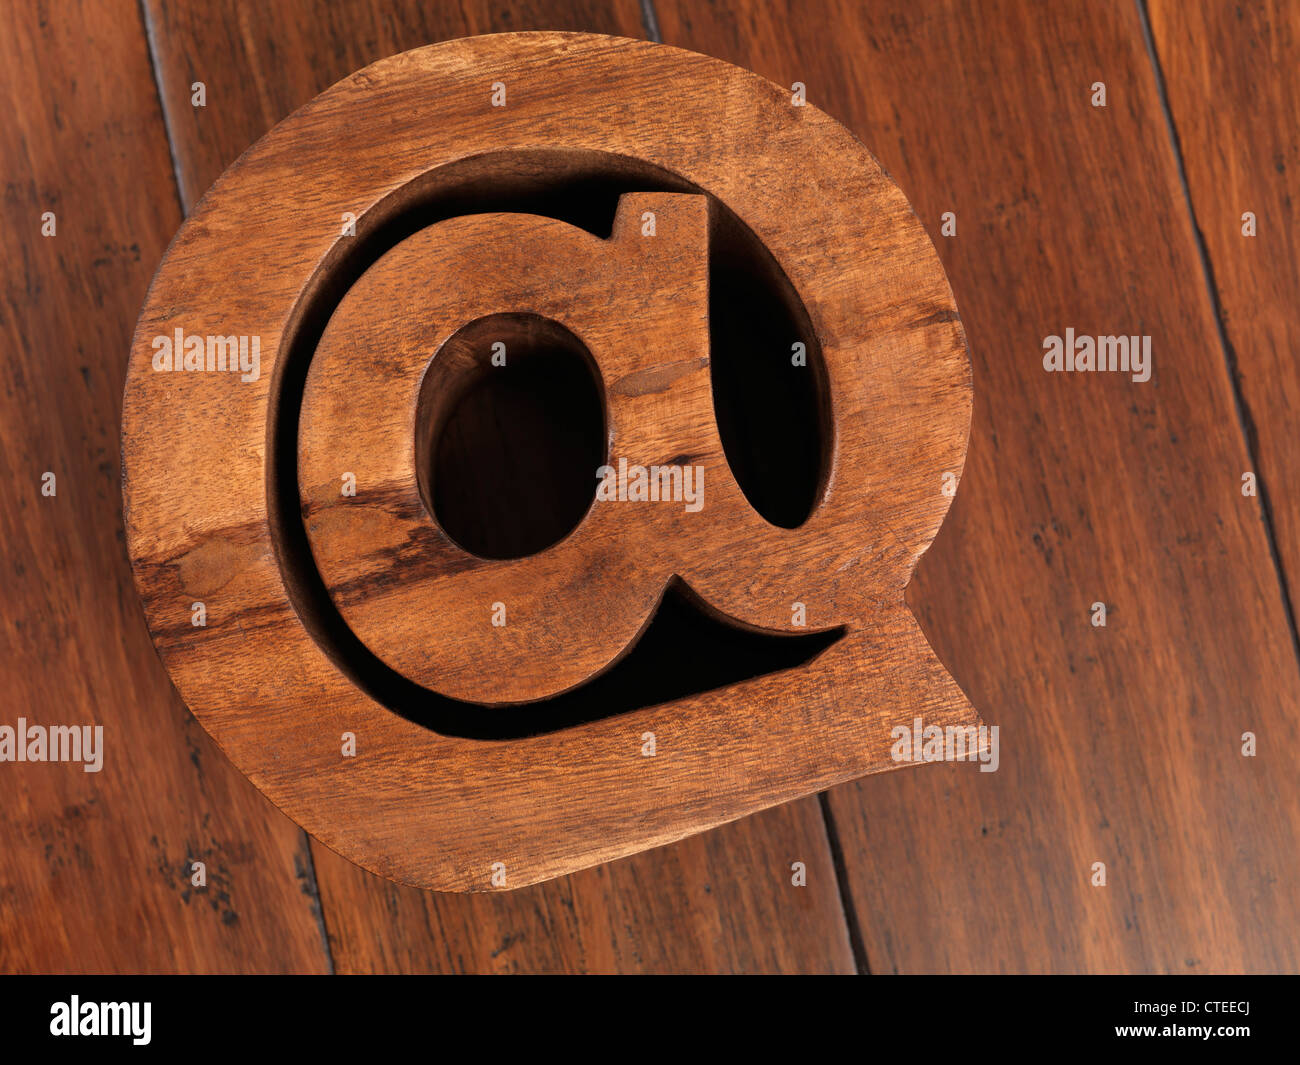 Internet and email symbol AT made of wood on hardwood floor background - Stock Image